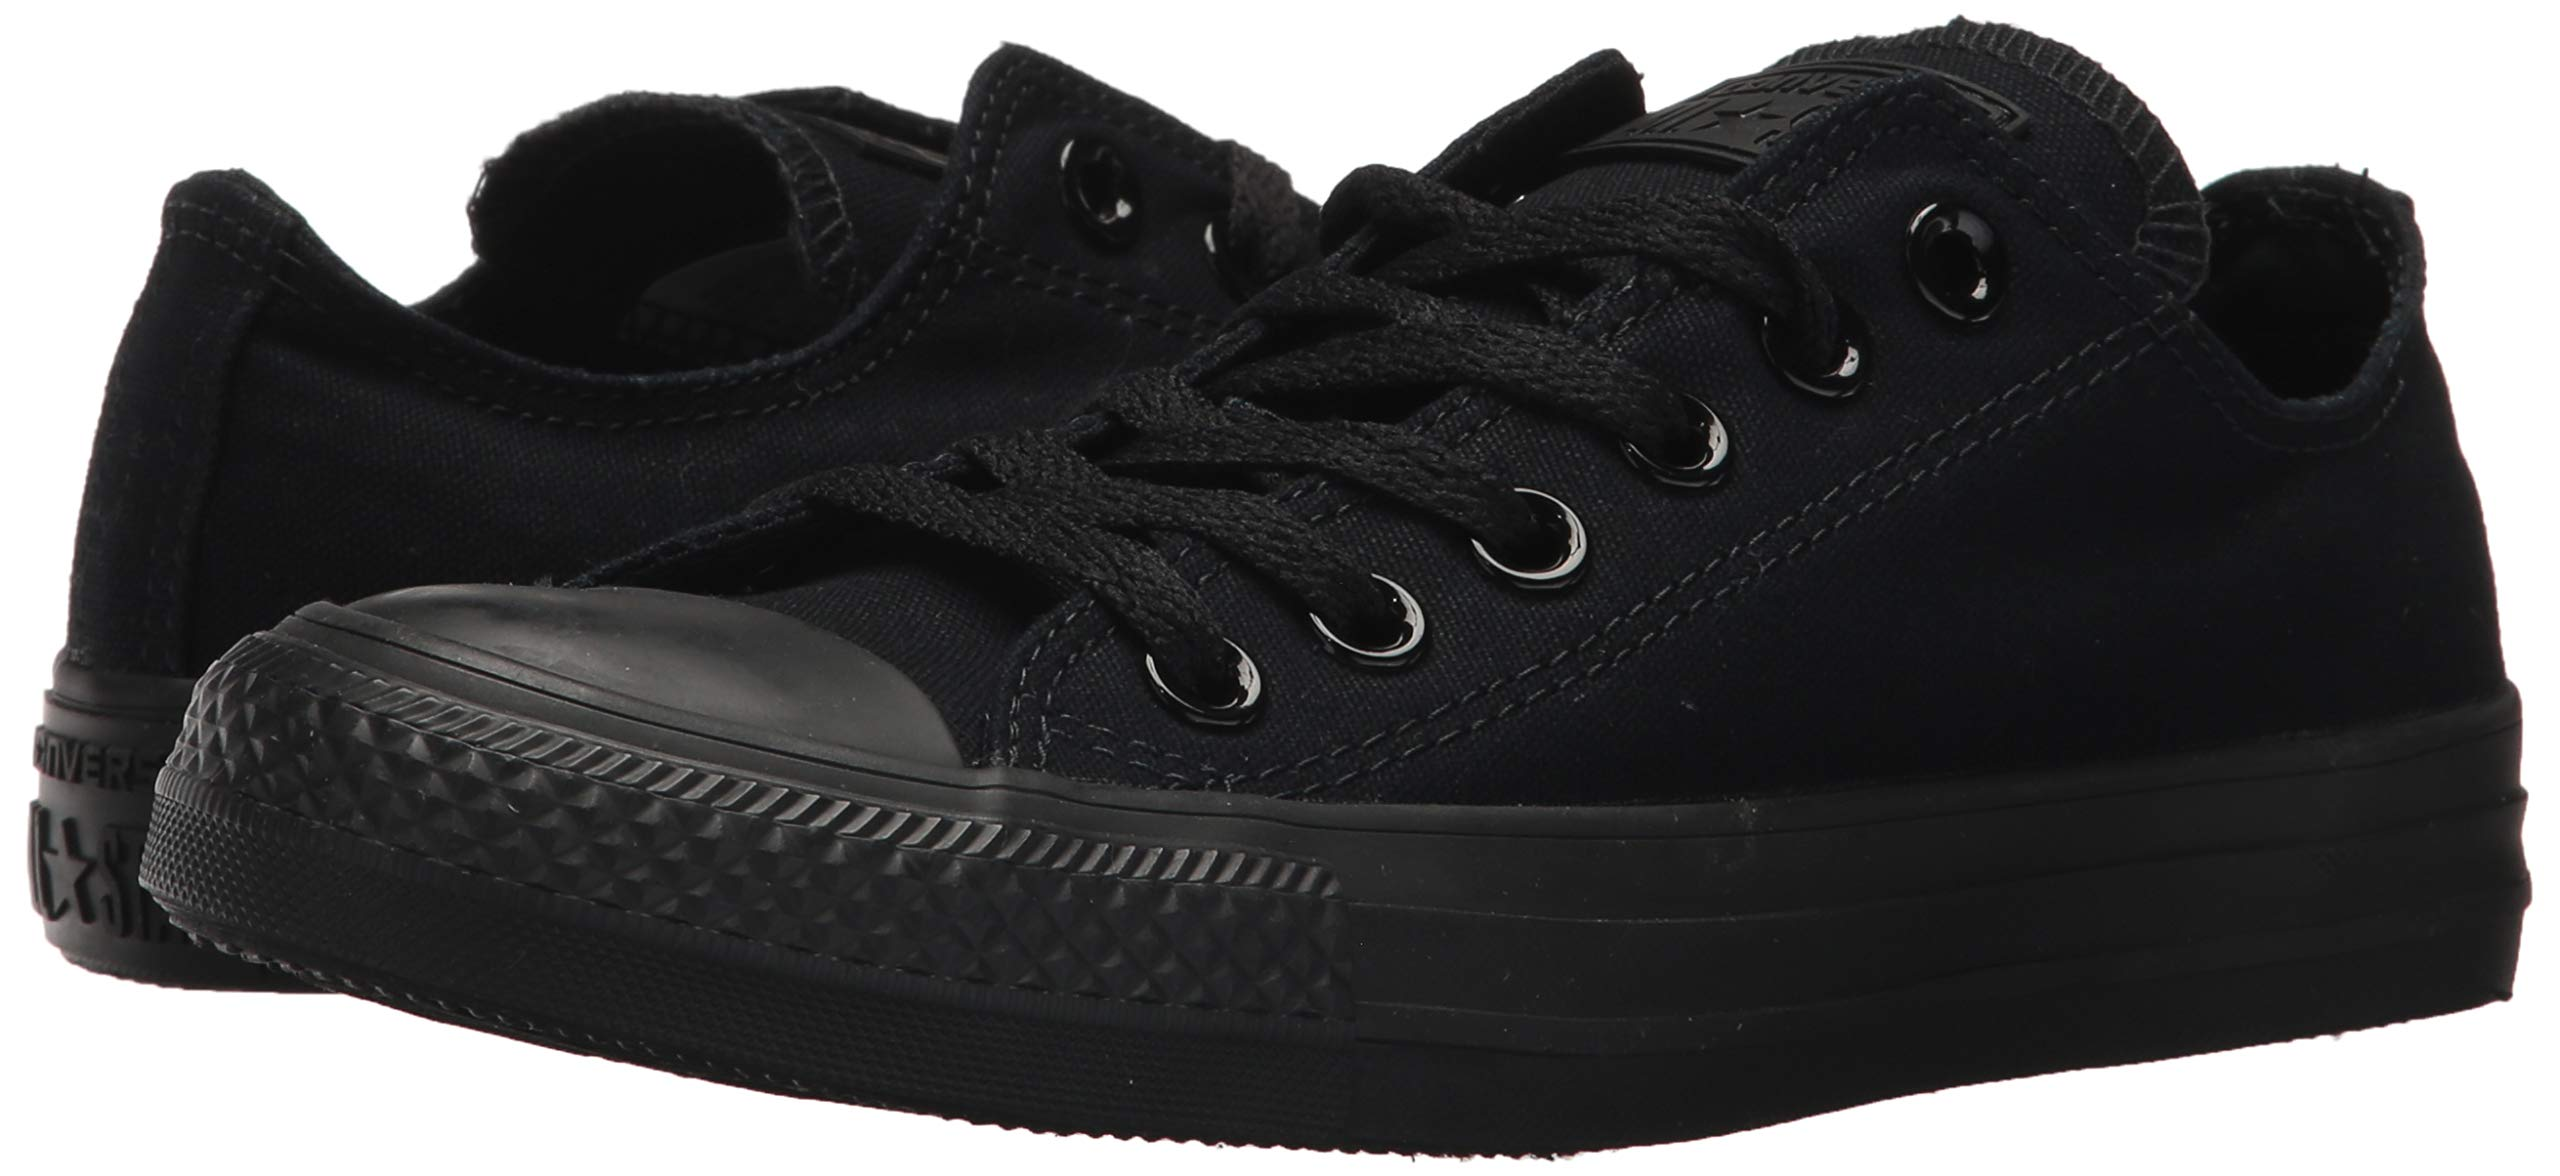 Converse Unisex Chuck Taylor All Star Low Top Black Monochrome Sneakers - 9 D(M) US by Converse (Image #7)